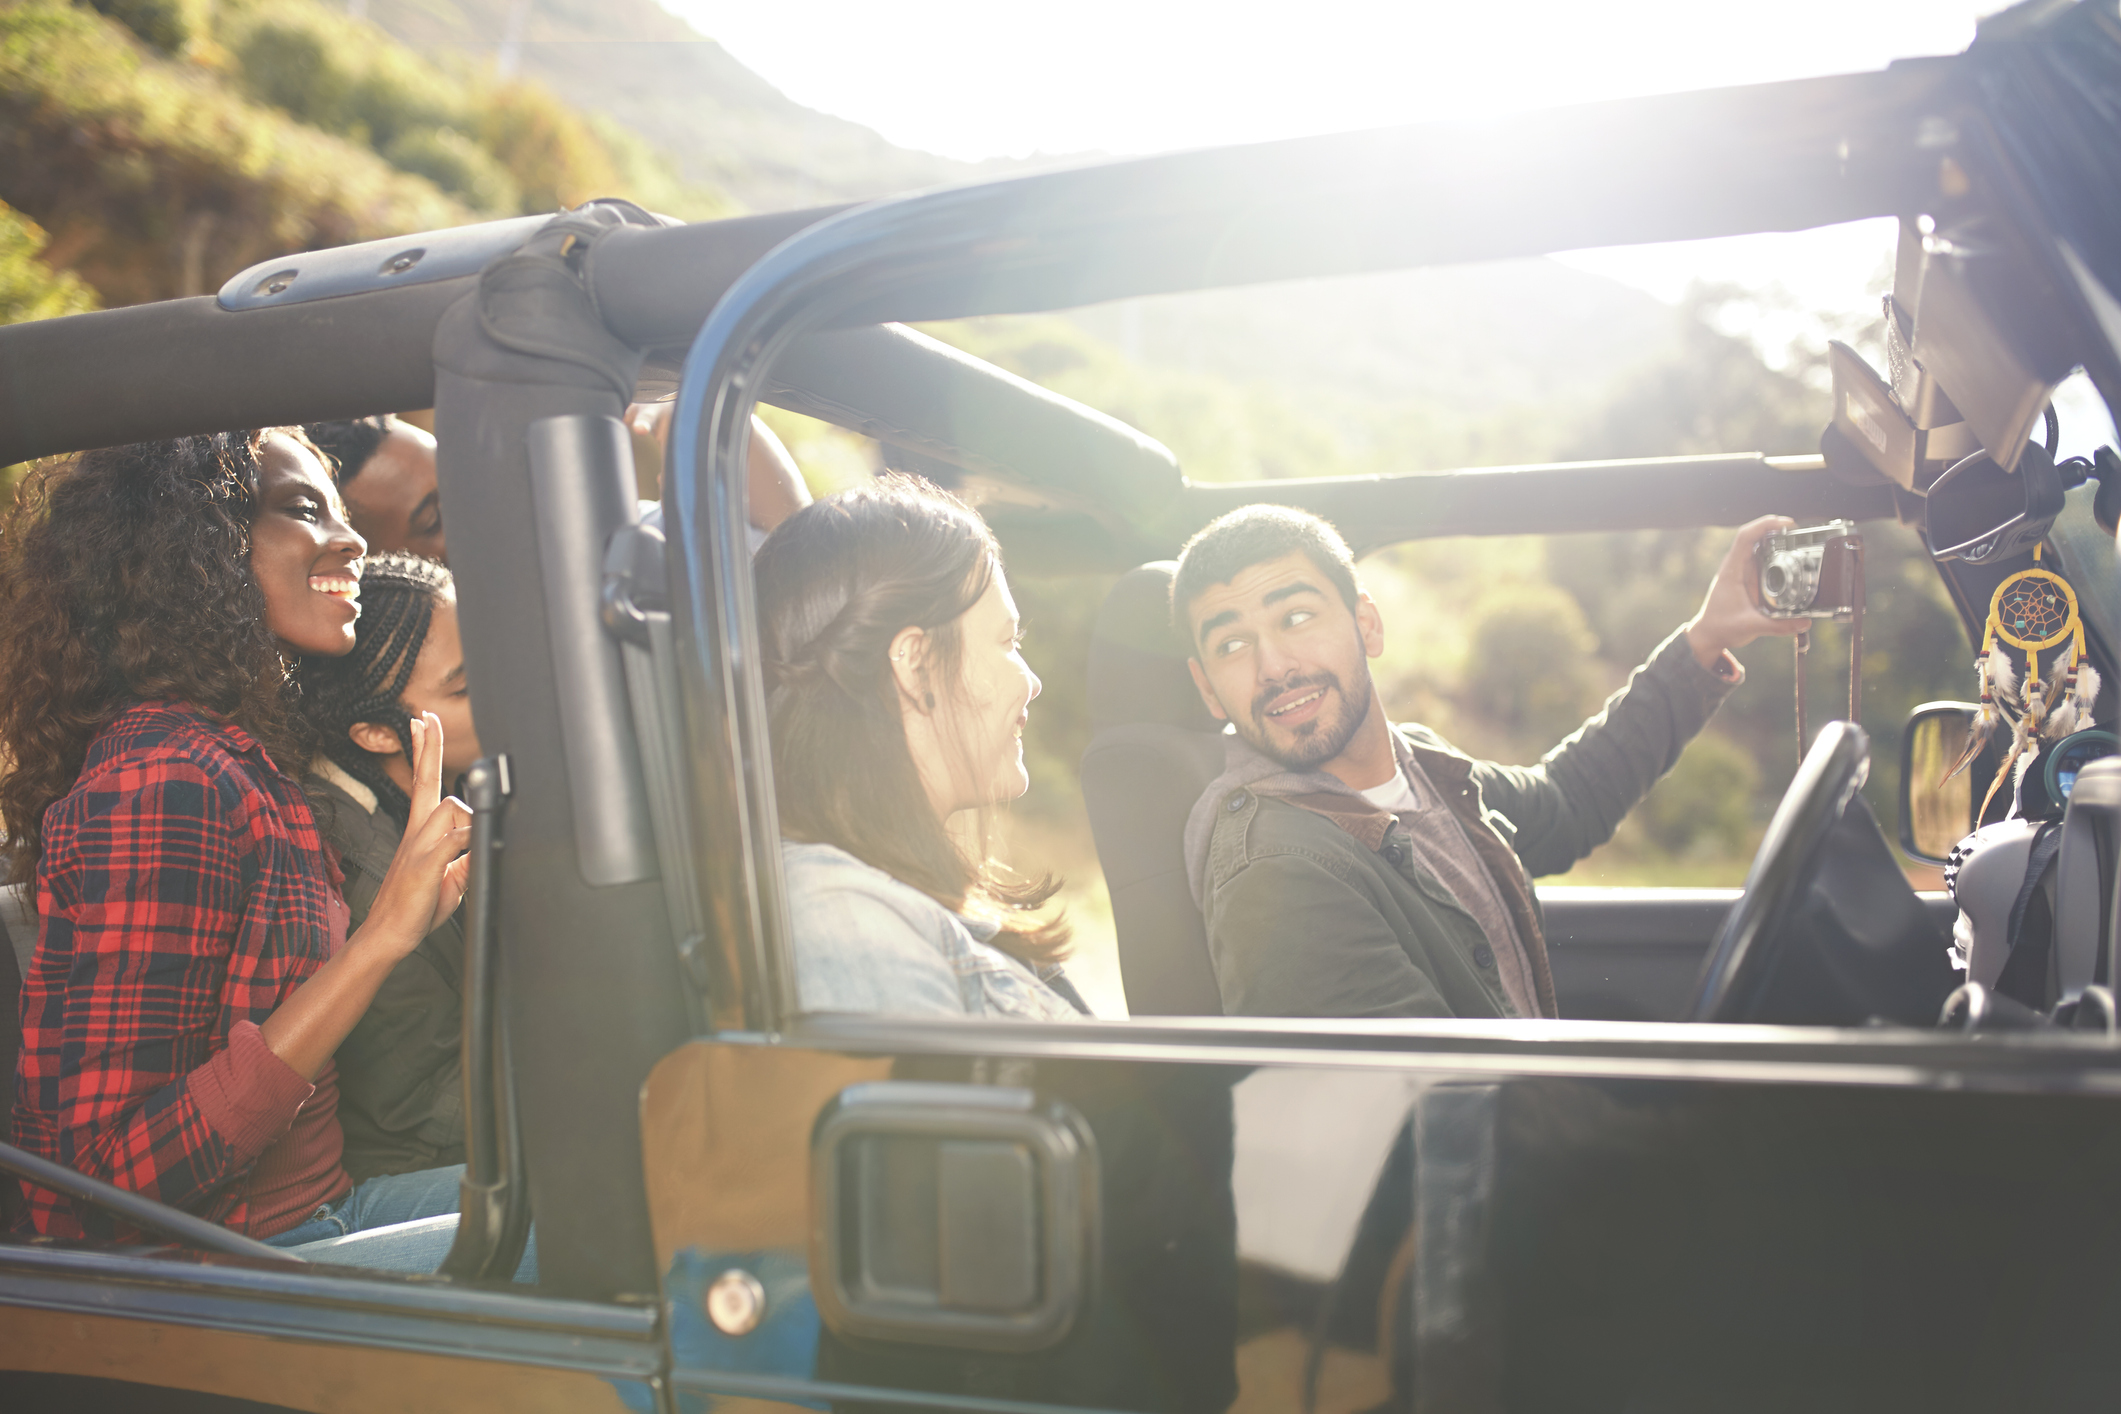 Man with digital camera taking selfie in jeep with friends